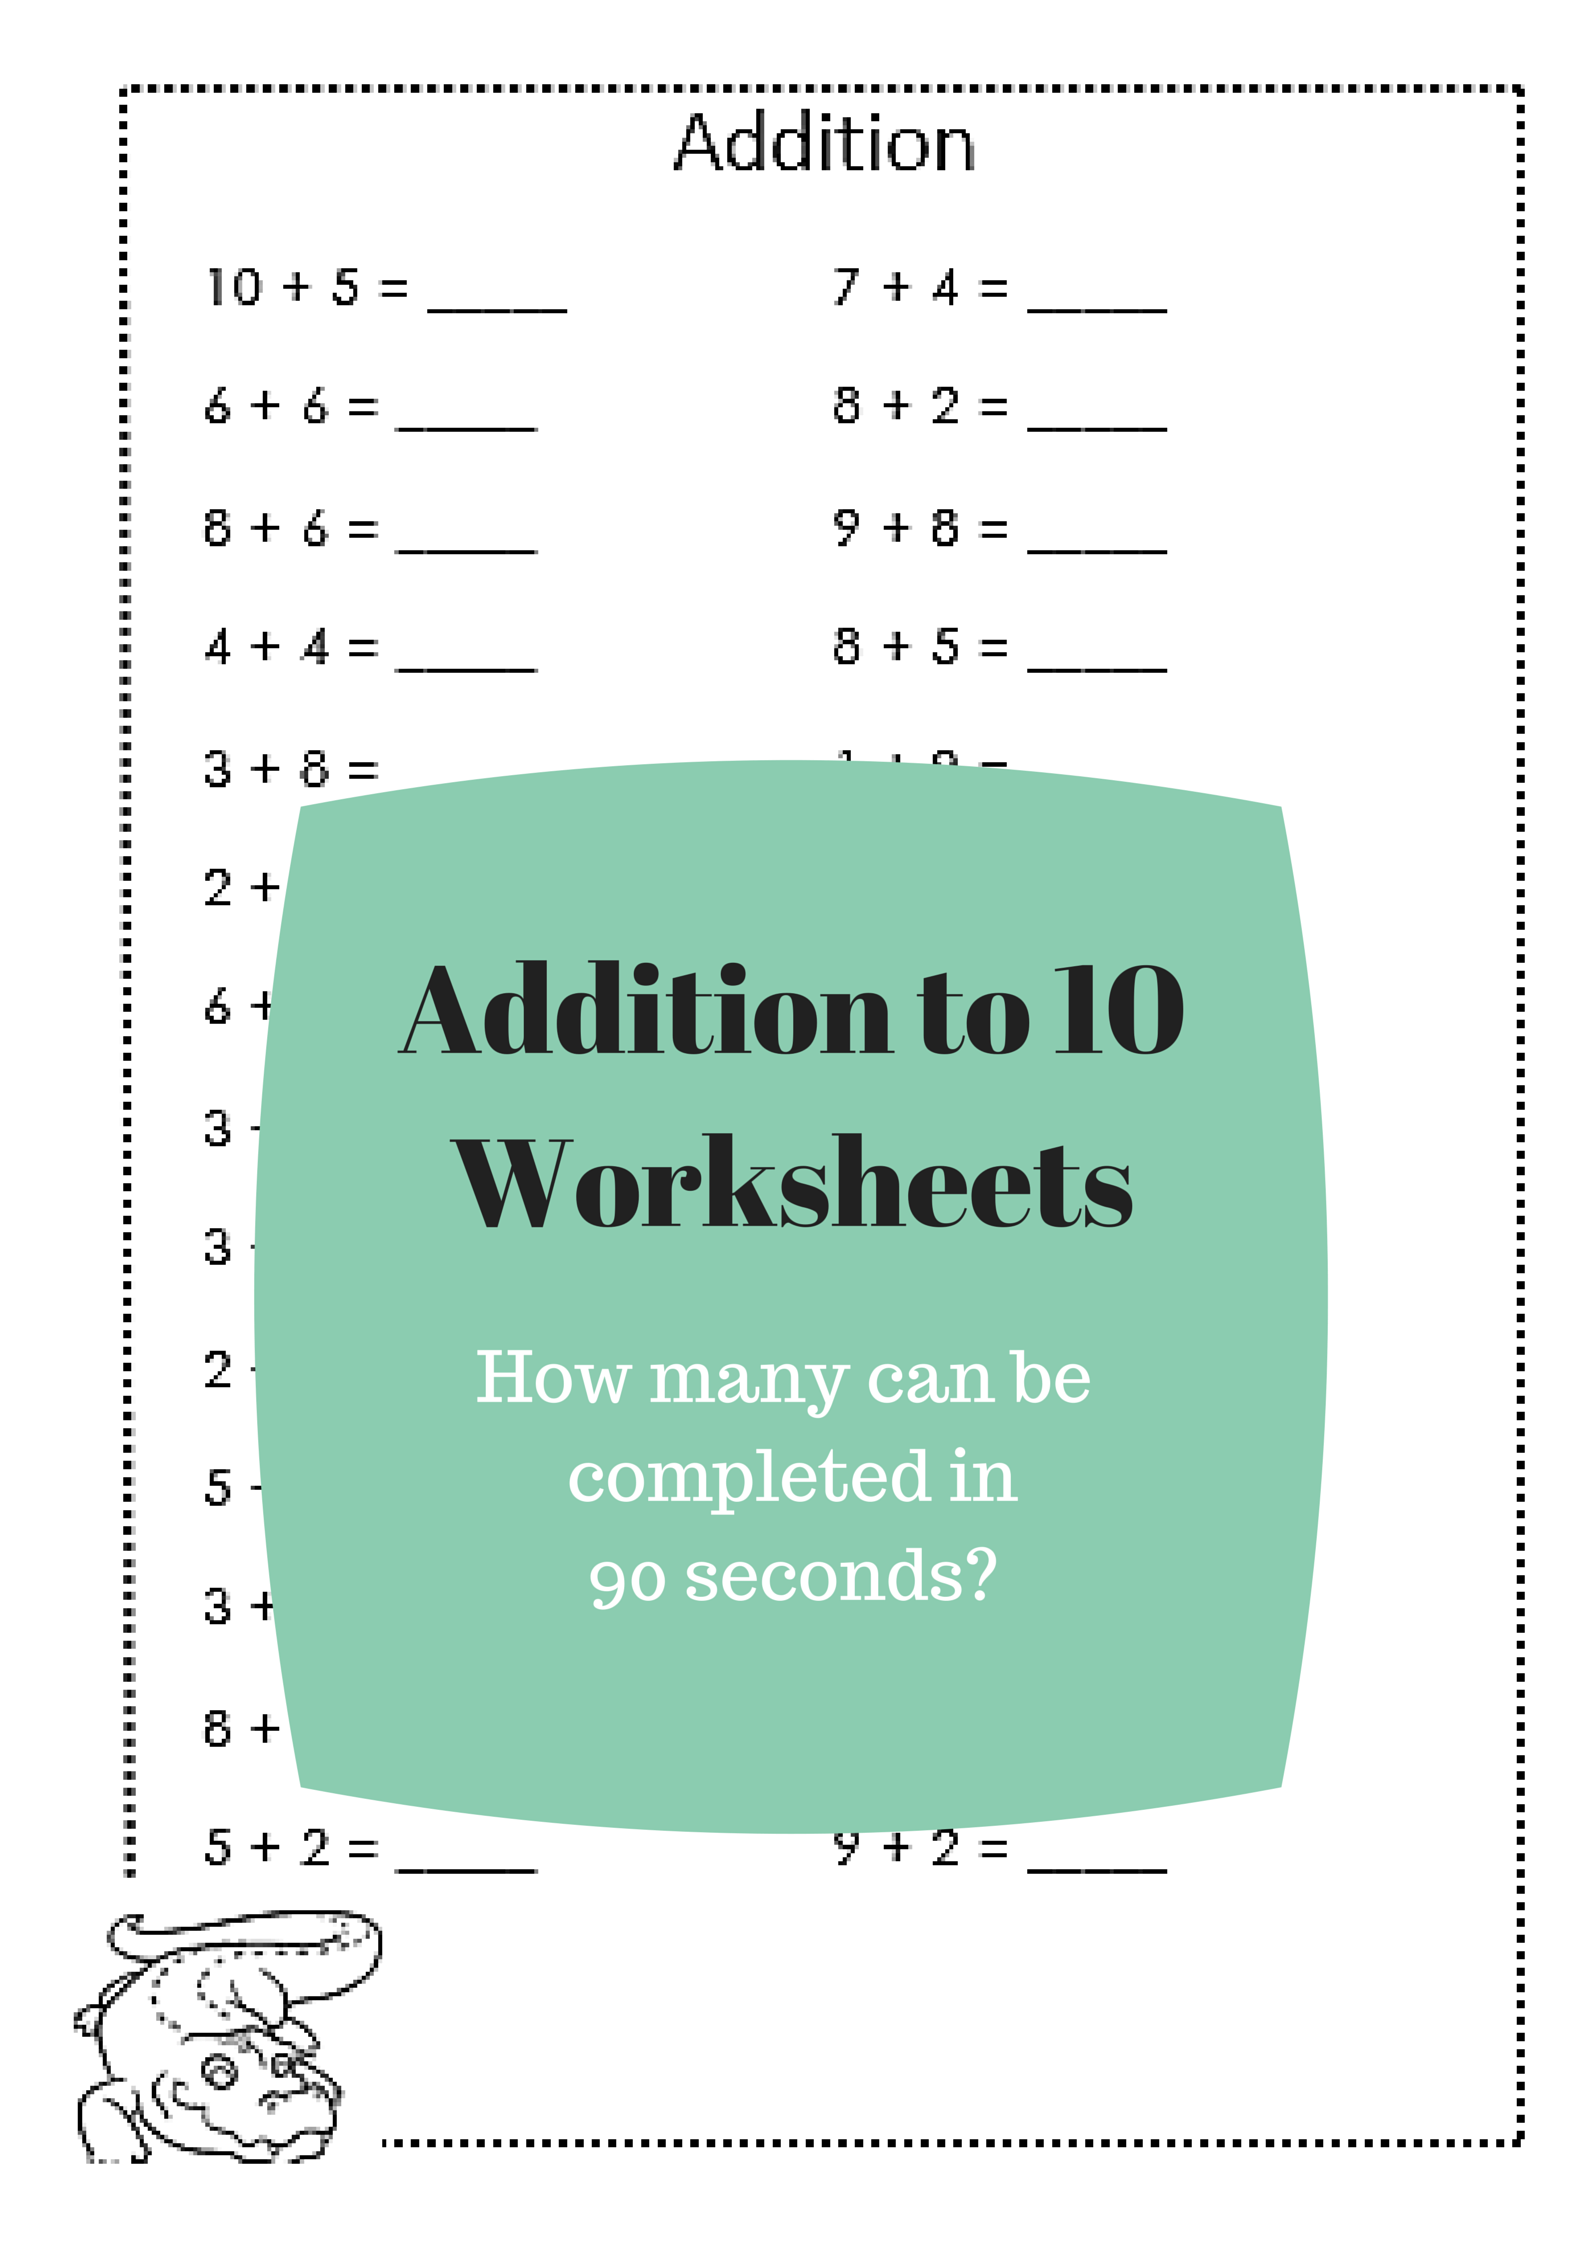 Addition To 10 Worksheets Free Printables